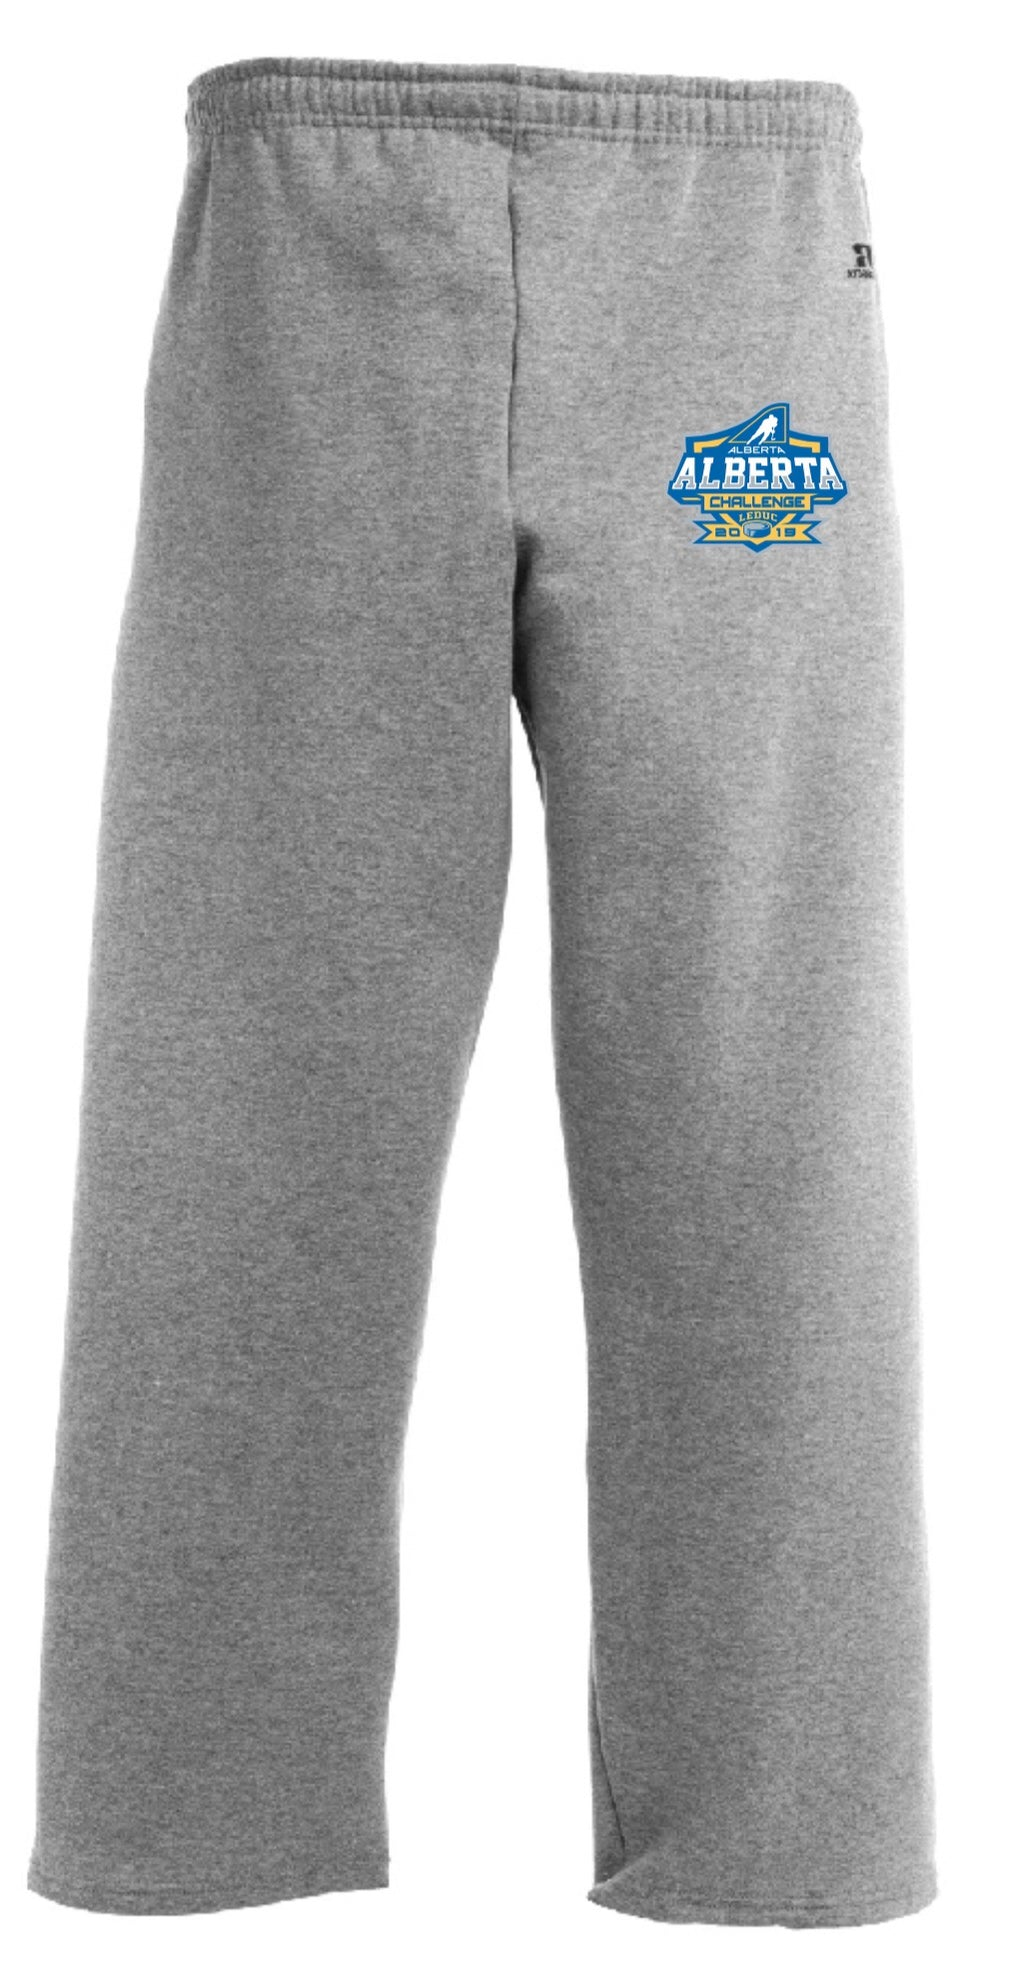 Alberta Challenge Dri-Power Fleece Pant